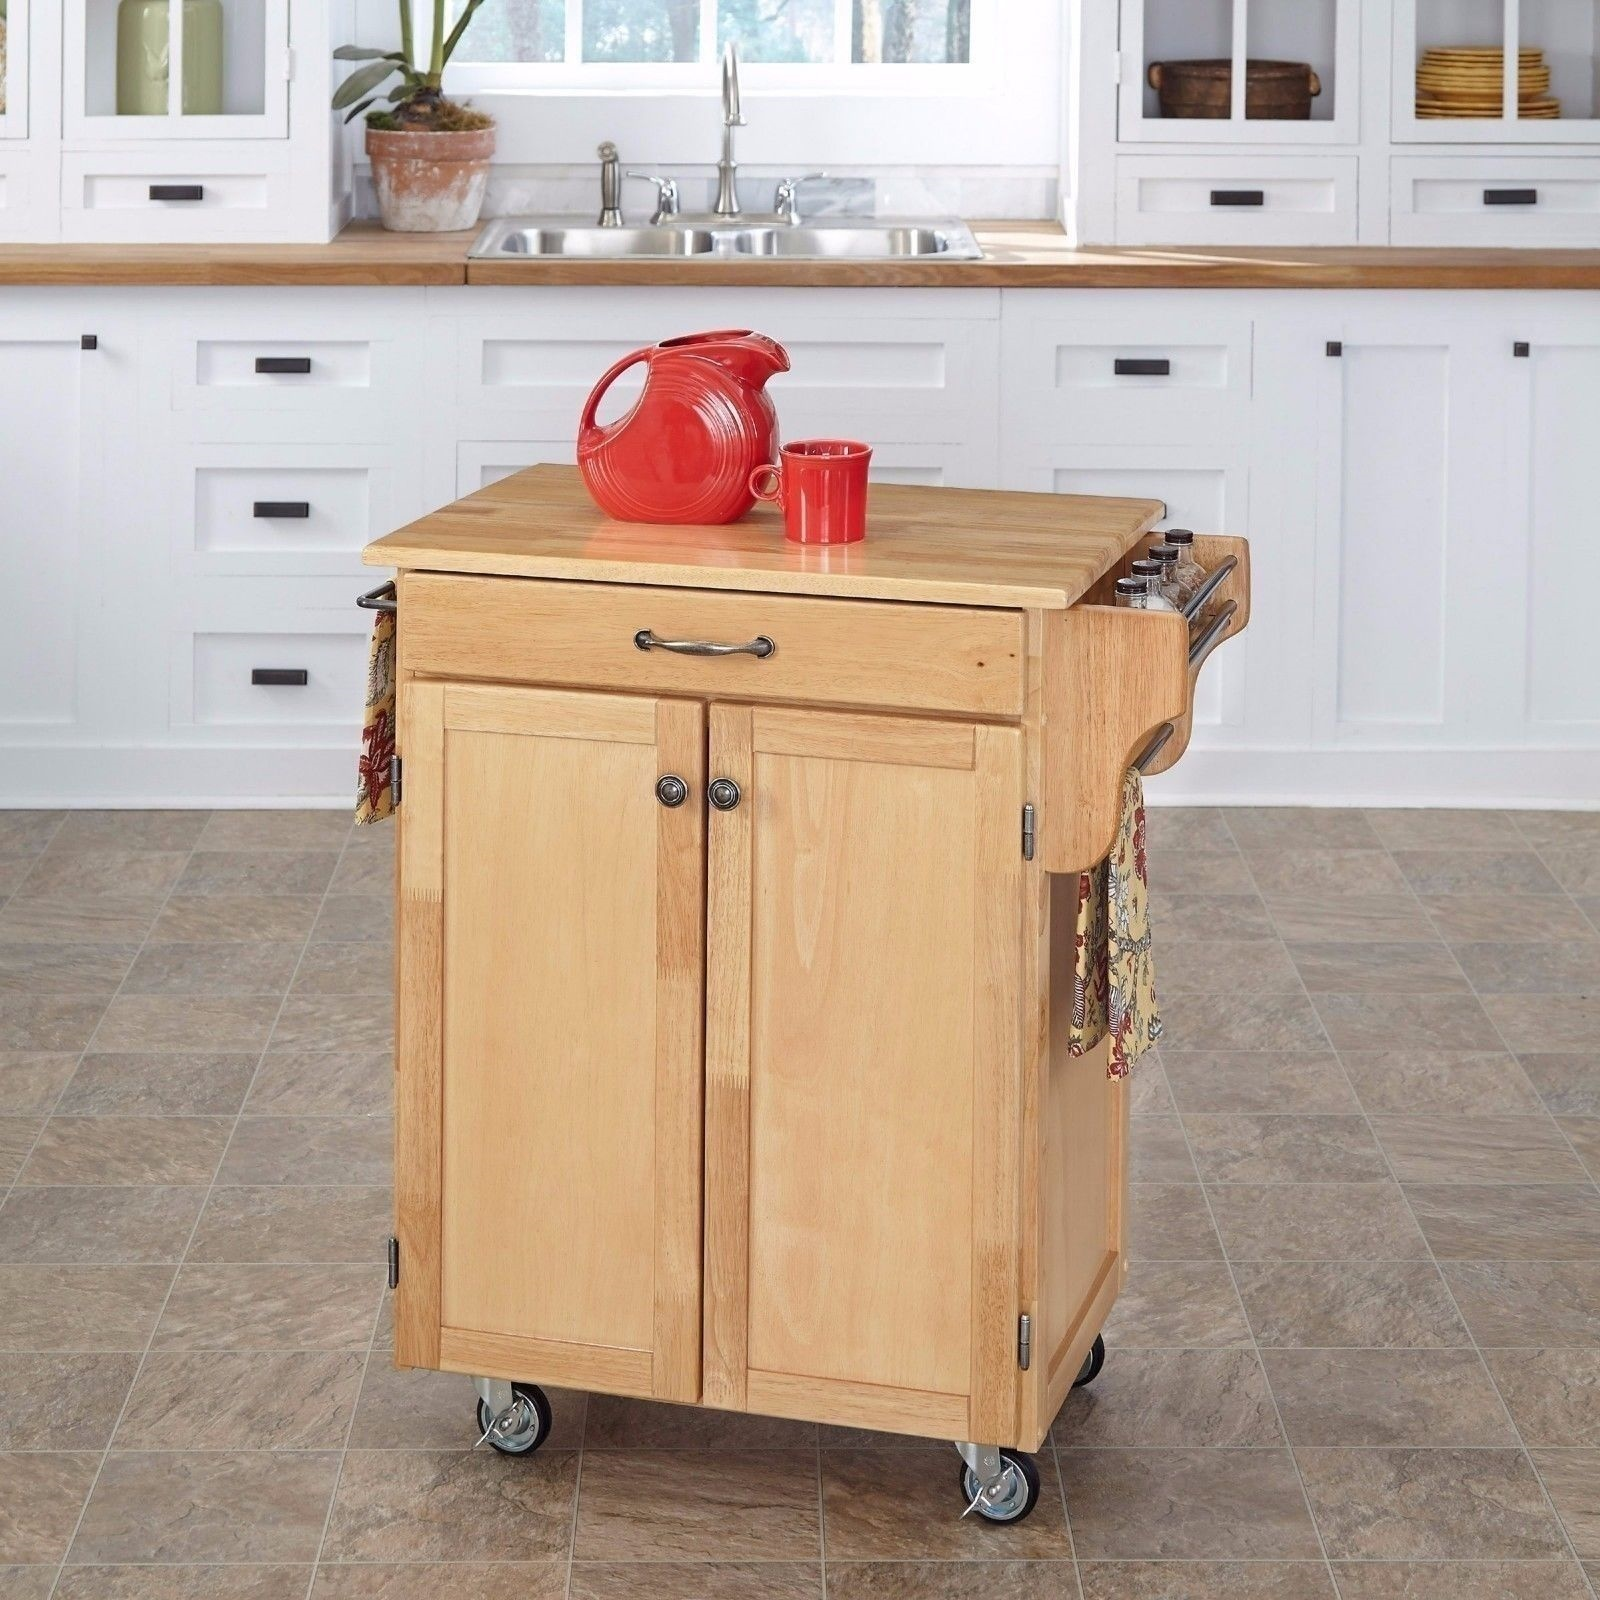 cutting board kitchen island new wood kitchen trolley cart island butcher block cutting board table natural ebay 9474